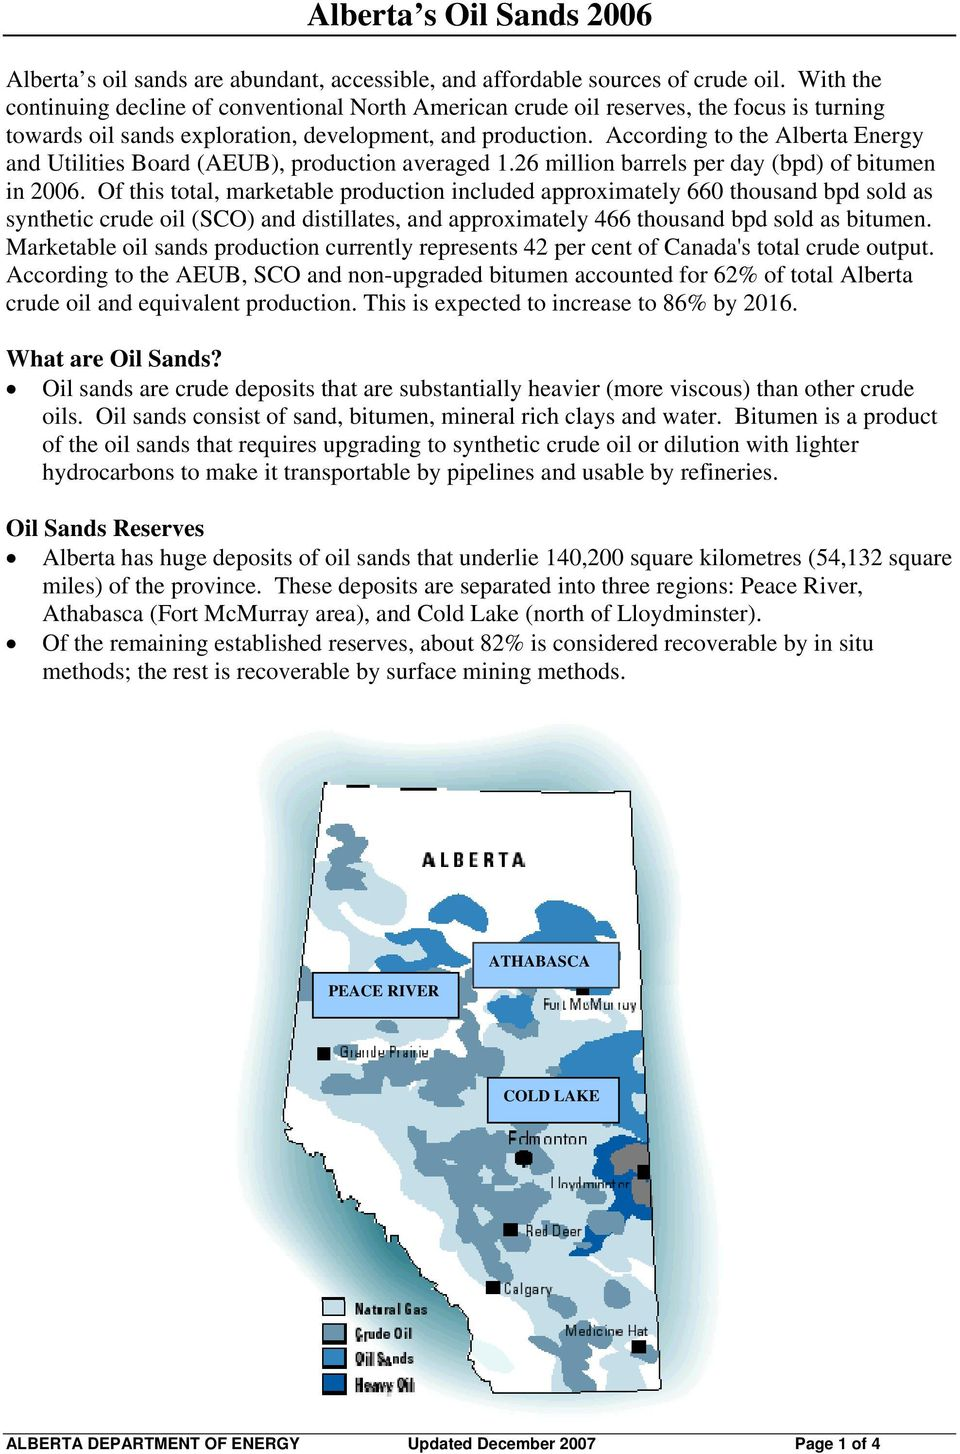 According to the Alberta Energy and Utilities Board (AEUB), production averaged 1.26 million barrels per day (bpd) of bitumen in 2006.